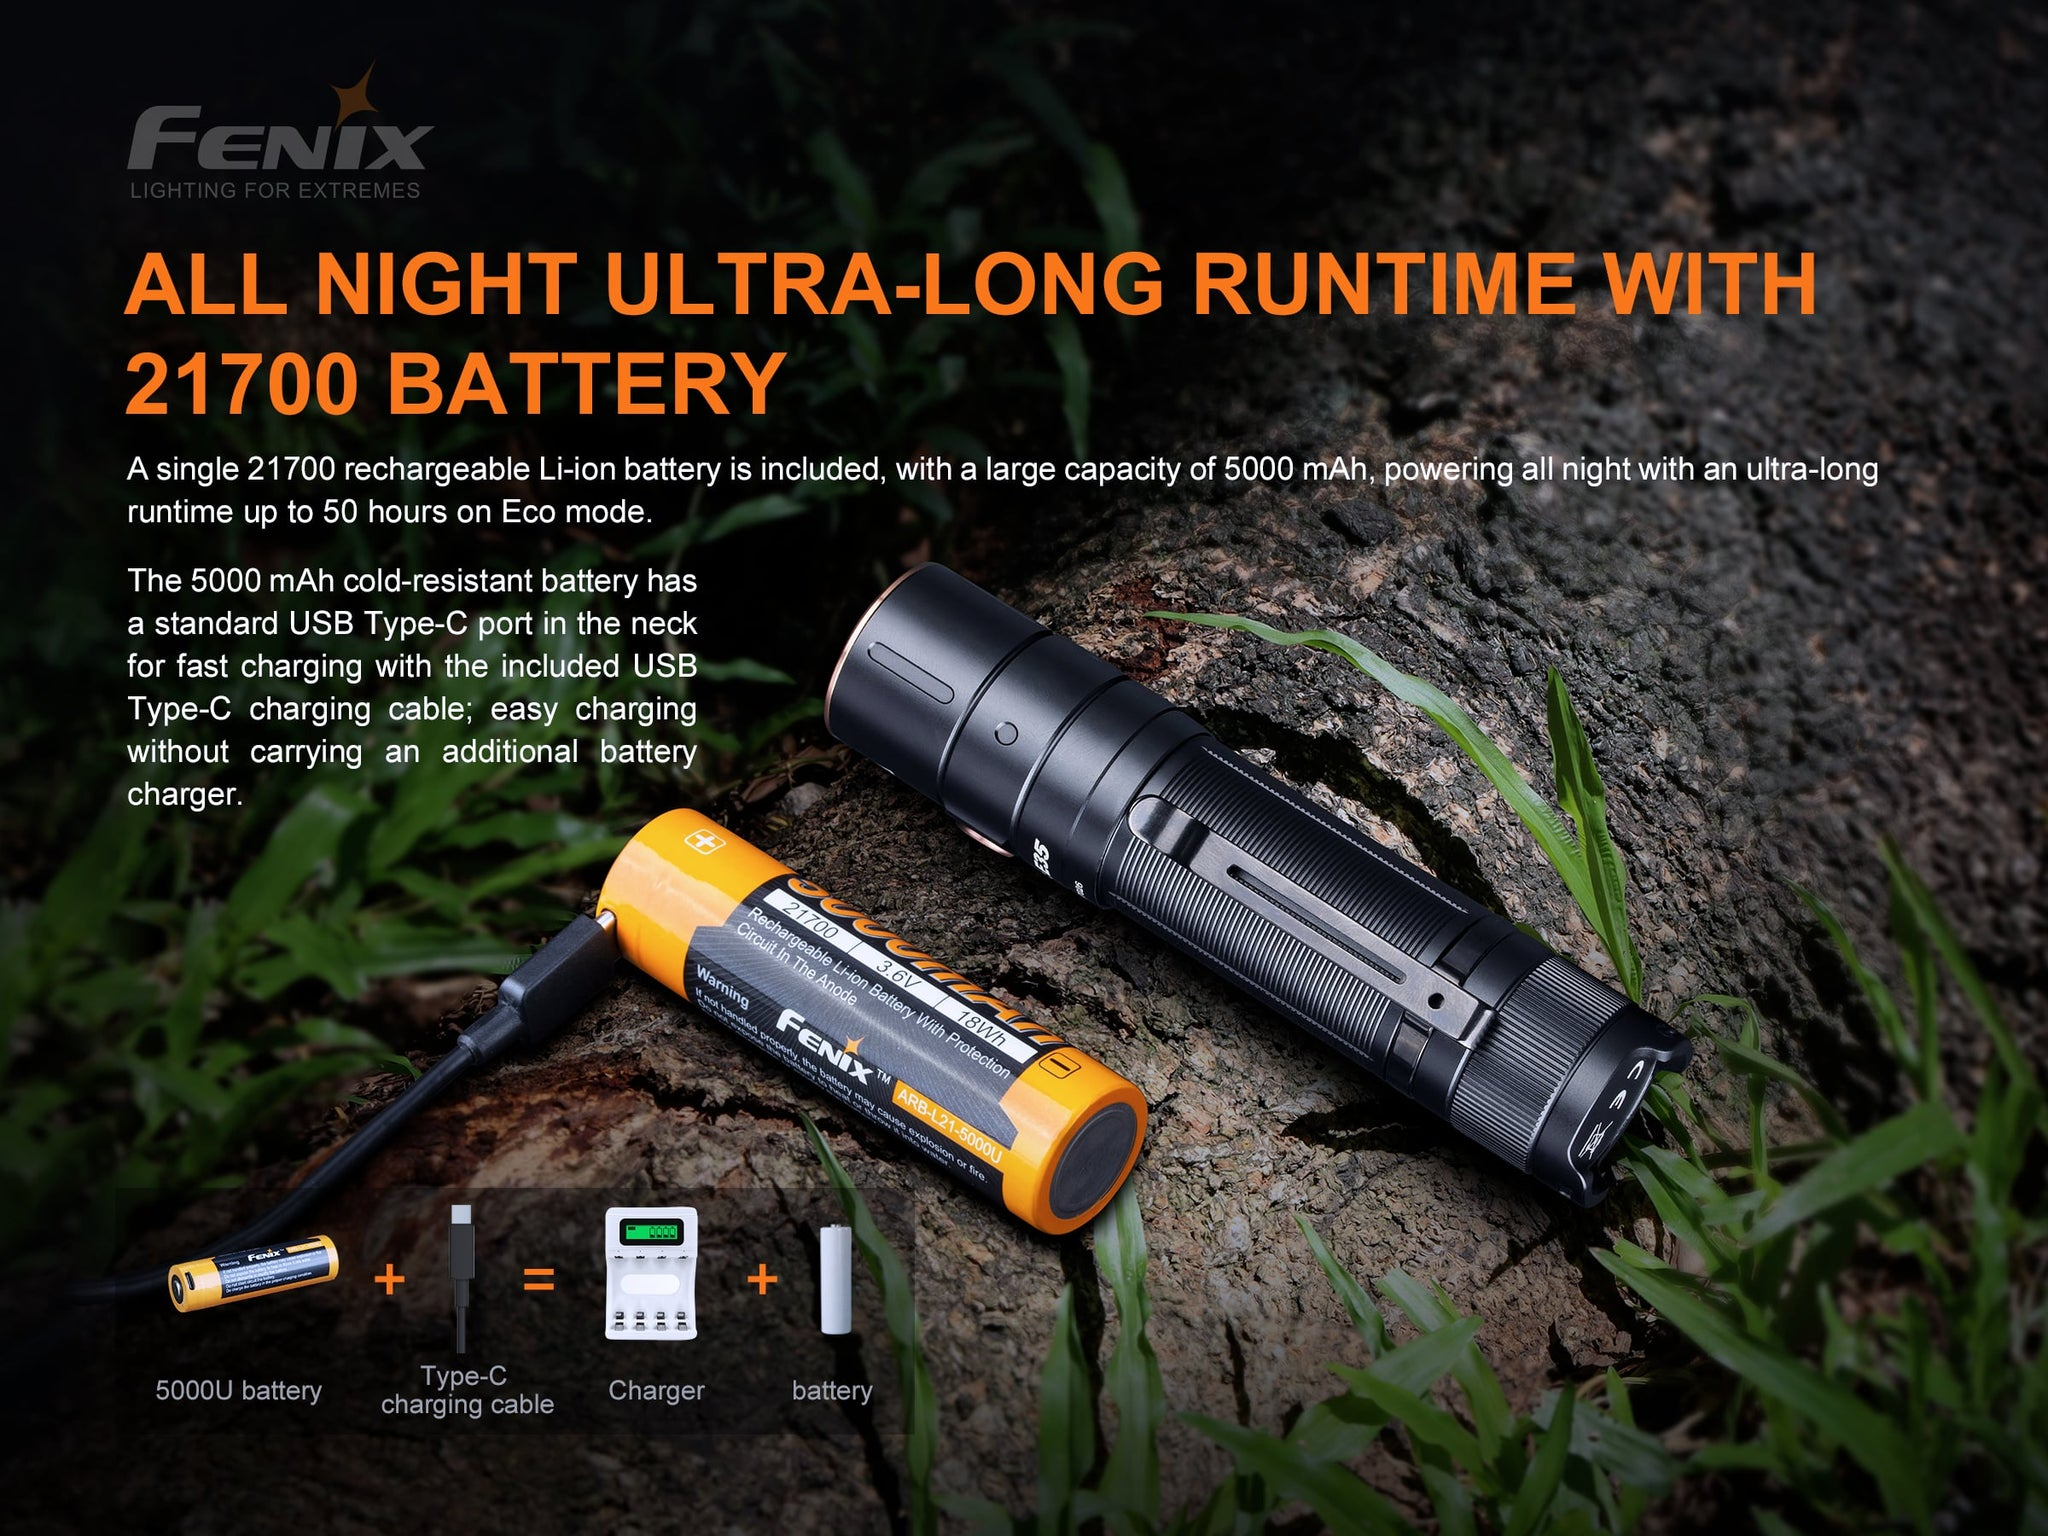 Fenix E35 V3 LED Torch Light, Powerful and Bright compact Flashlight with 3000 Lumens, Pocket Size Best Rechargeable Torch in India at LightMen